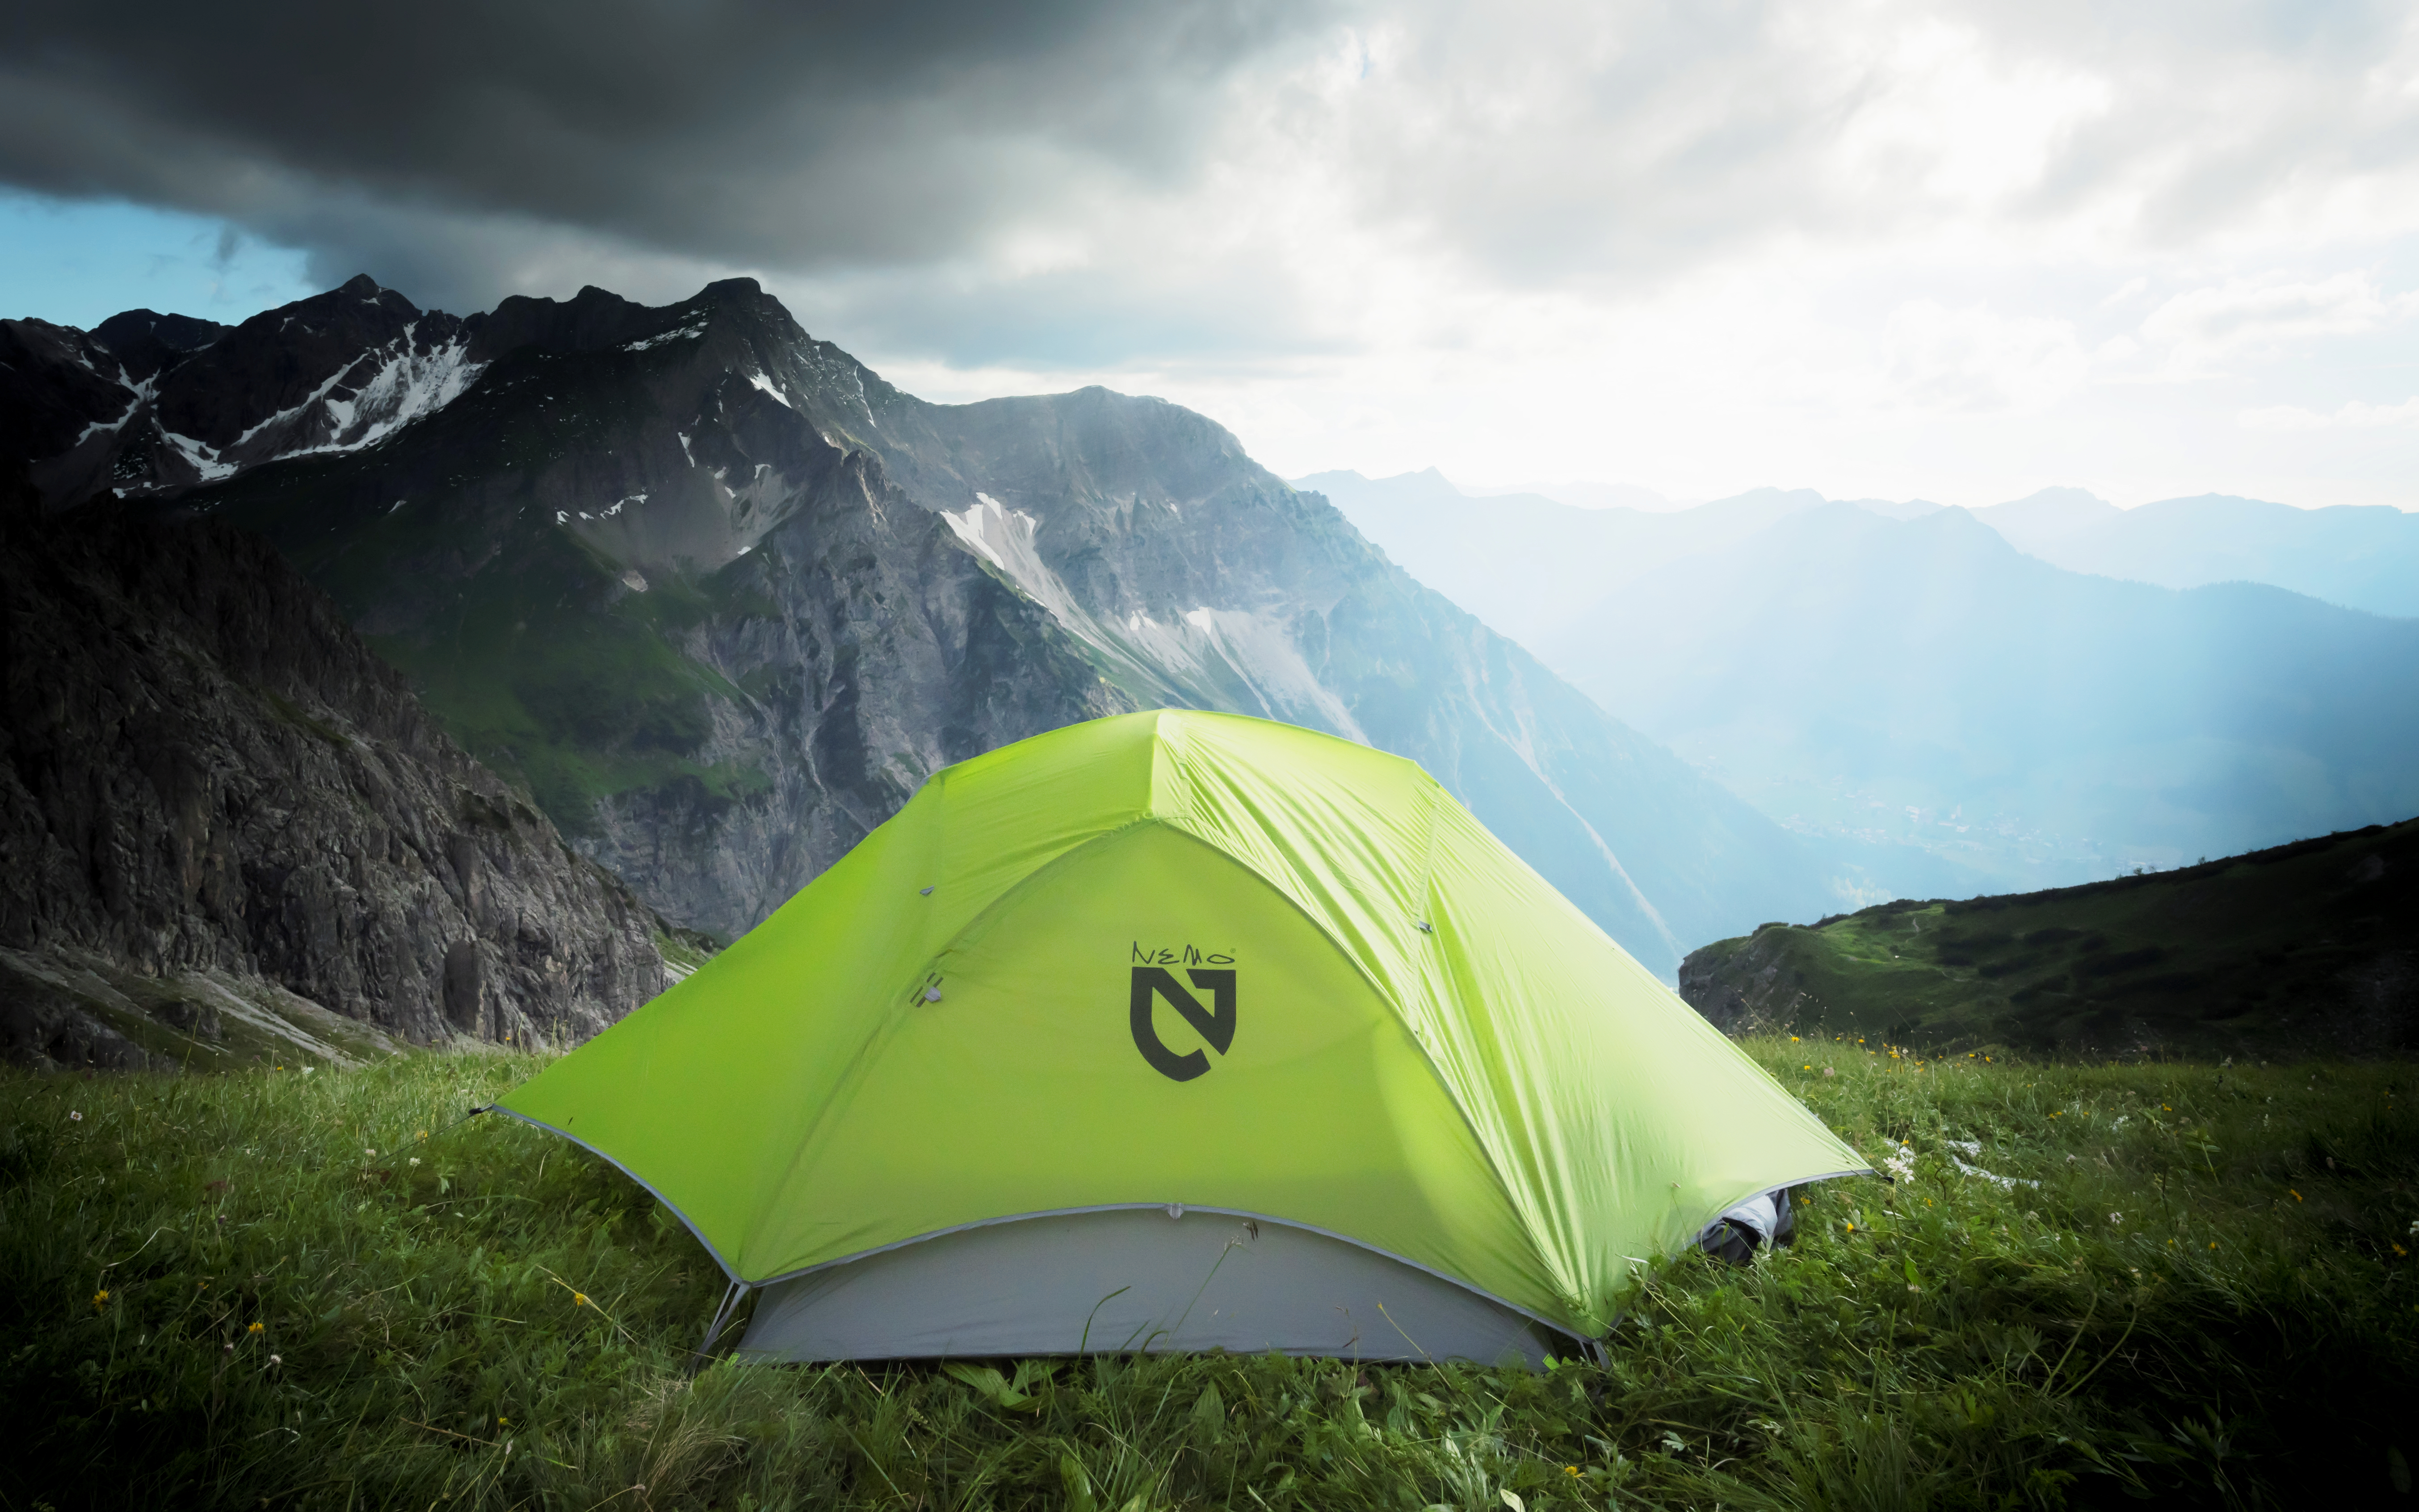 tents need care and protection & Cleaning Waterproofing and UV Protecting your Tent |